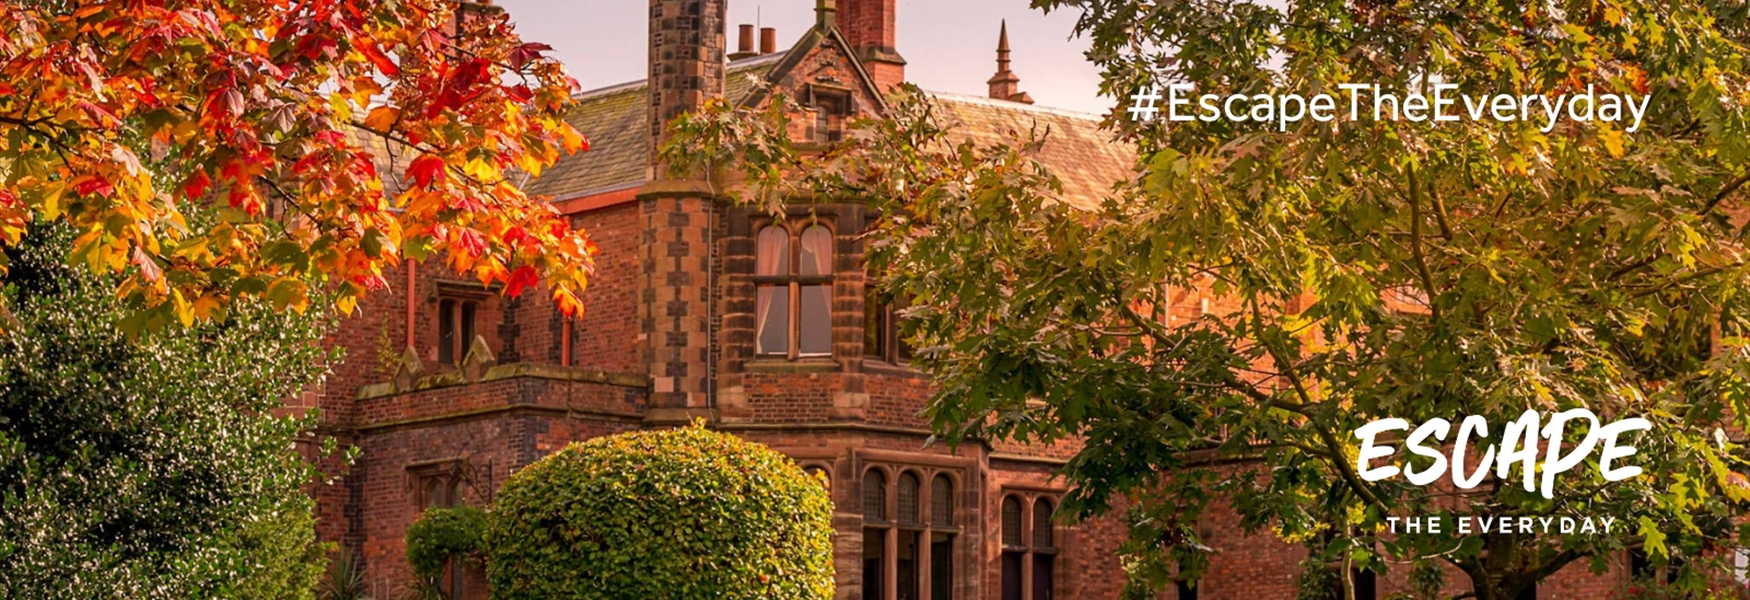 10 Scenic Places to Discover in and Around Warrington this Autumn